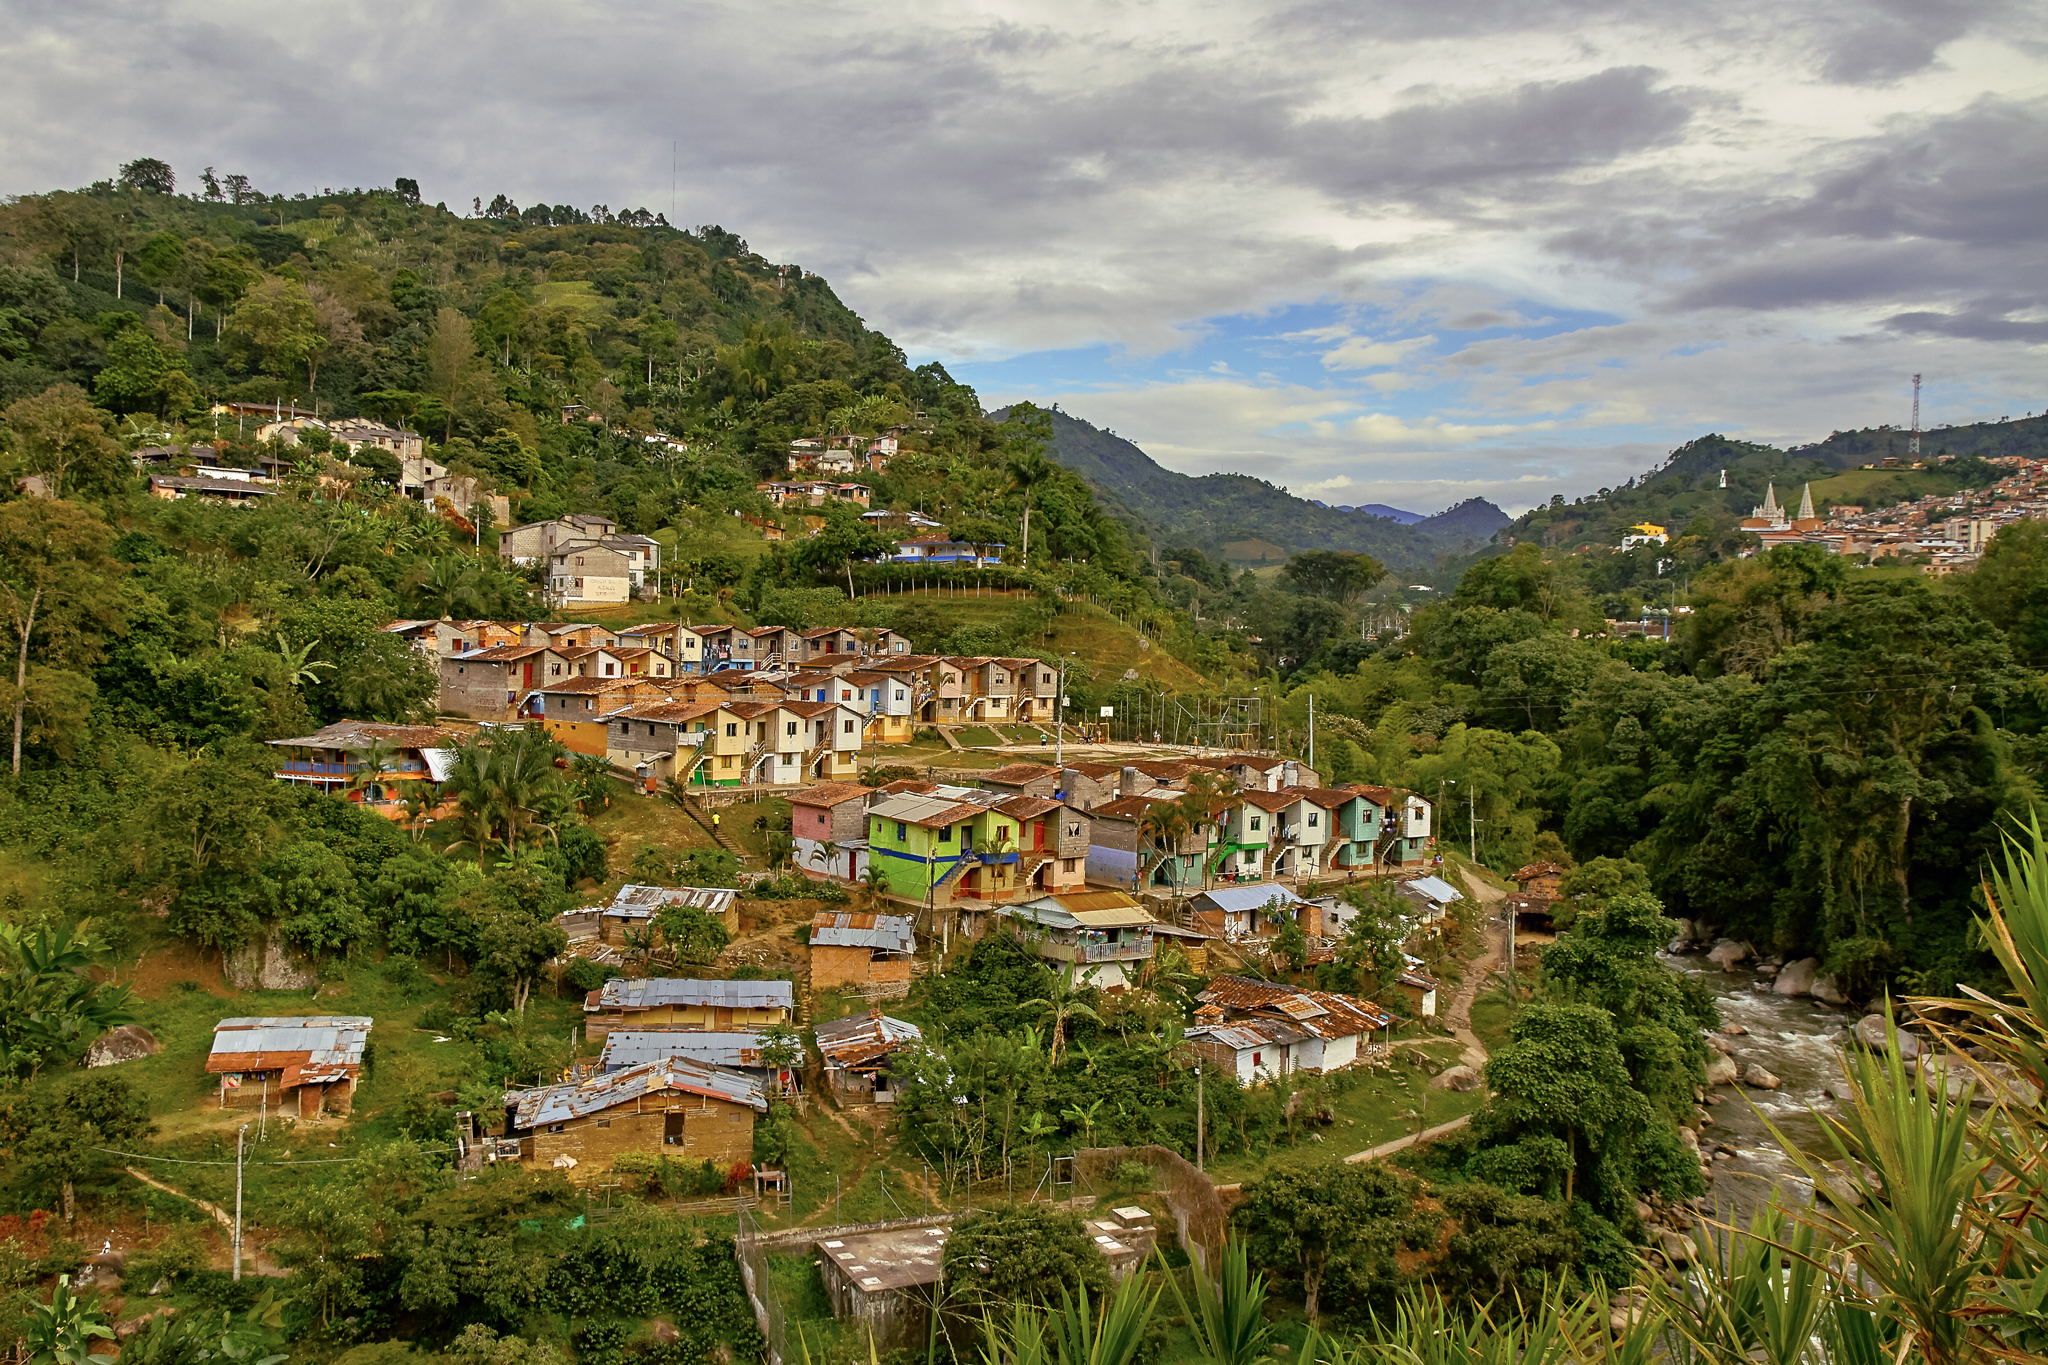 The town of Jardín, in northwest Colombia, is nestled in the Andes and is known for its brightly colored houses. Photgraph by Pedro Szekely